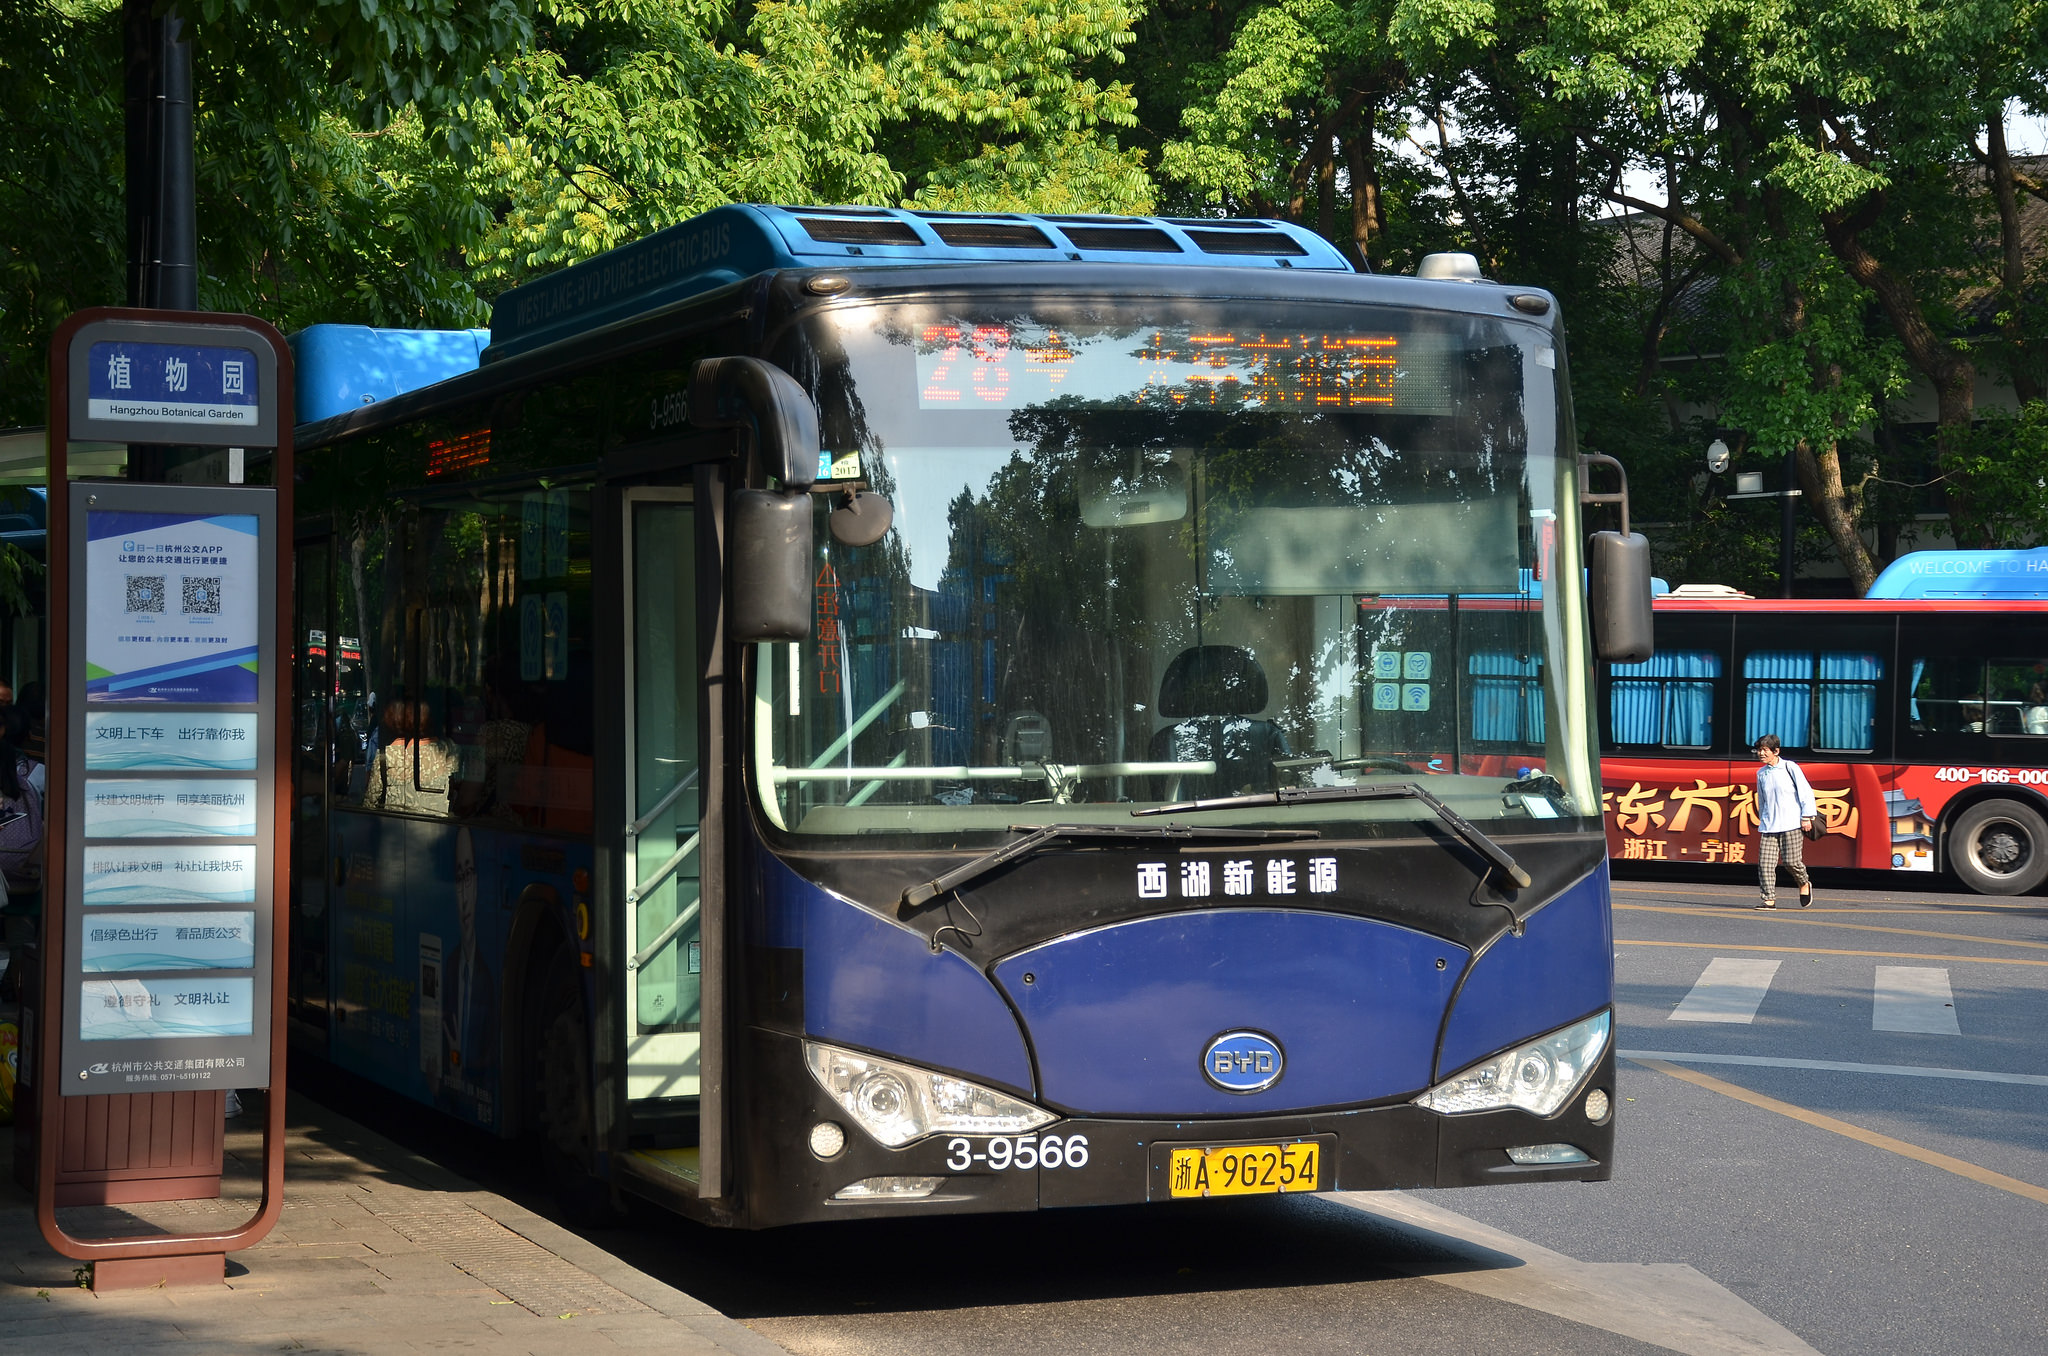 <p>An electric BYD bus in Hangzhou. Flickr/shankar s.</p>